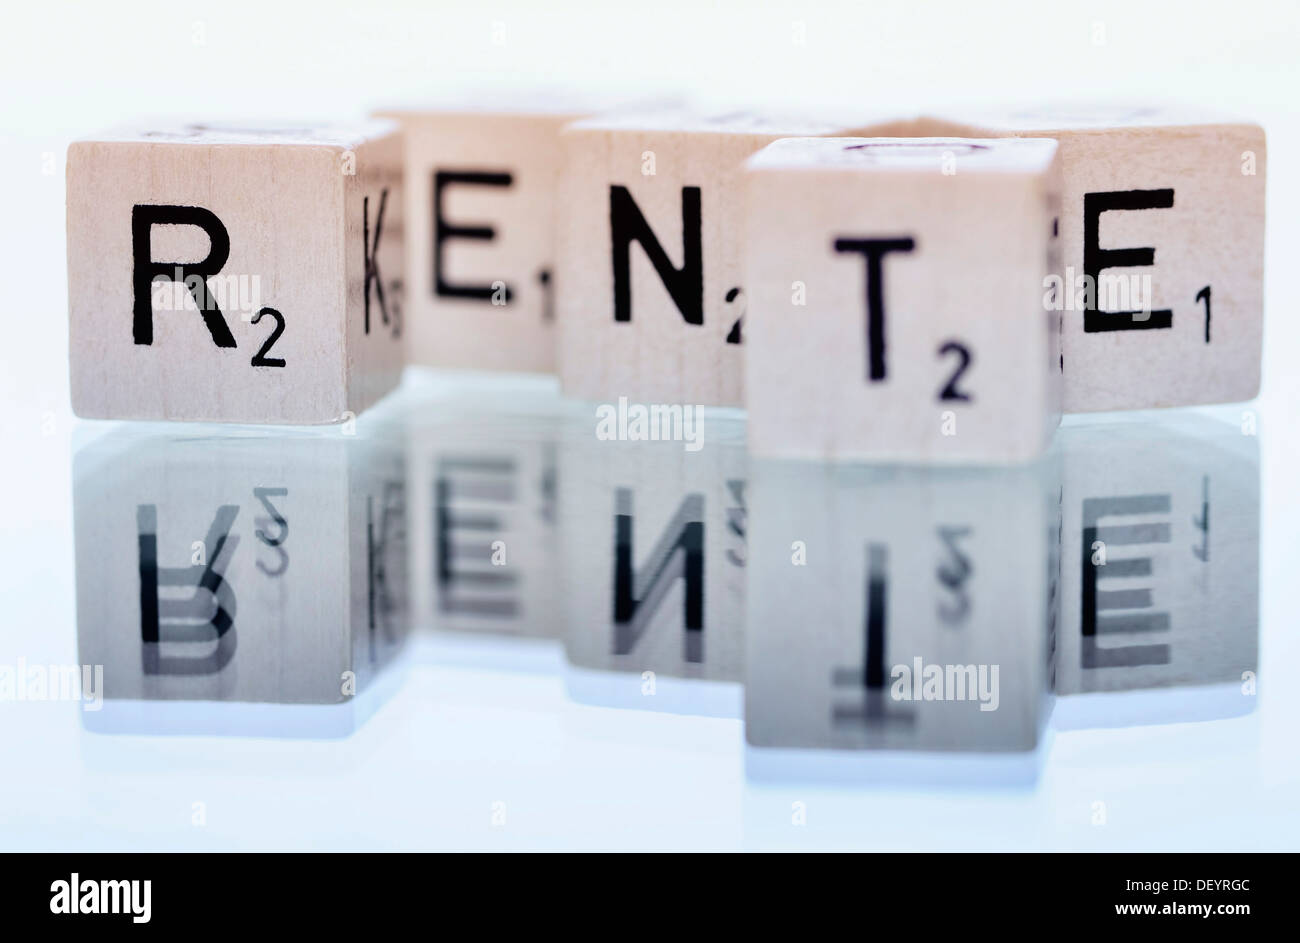 Cubes with letters forming the word 'Rente', German for 'pension' - Stock Image